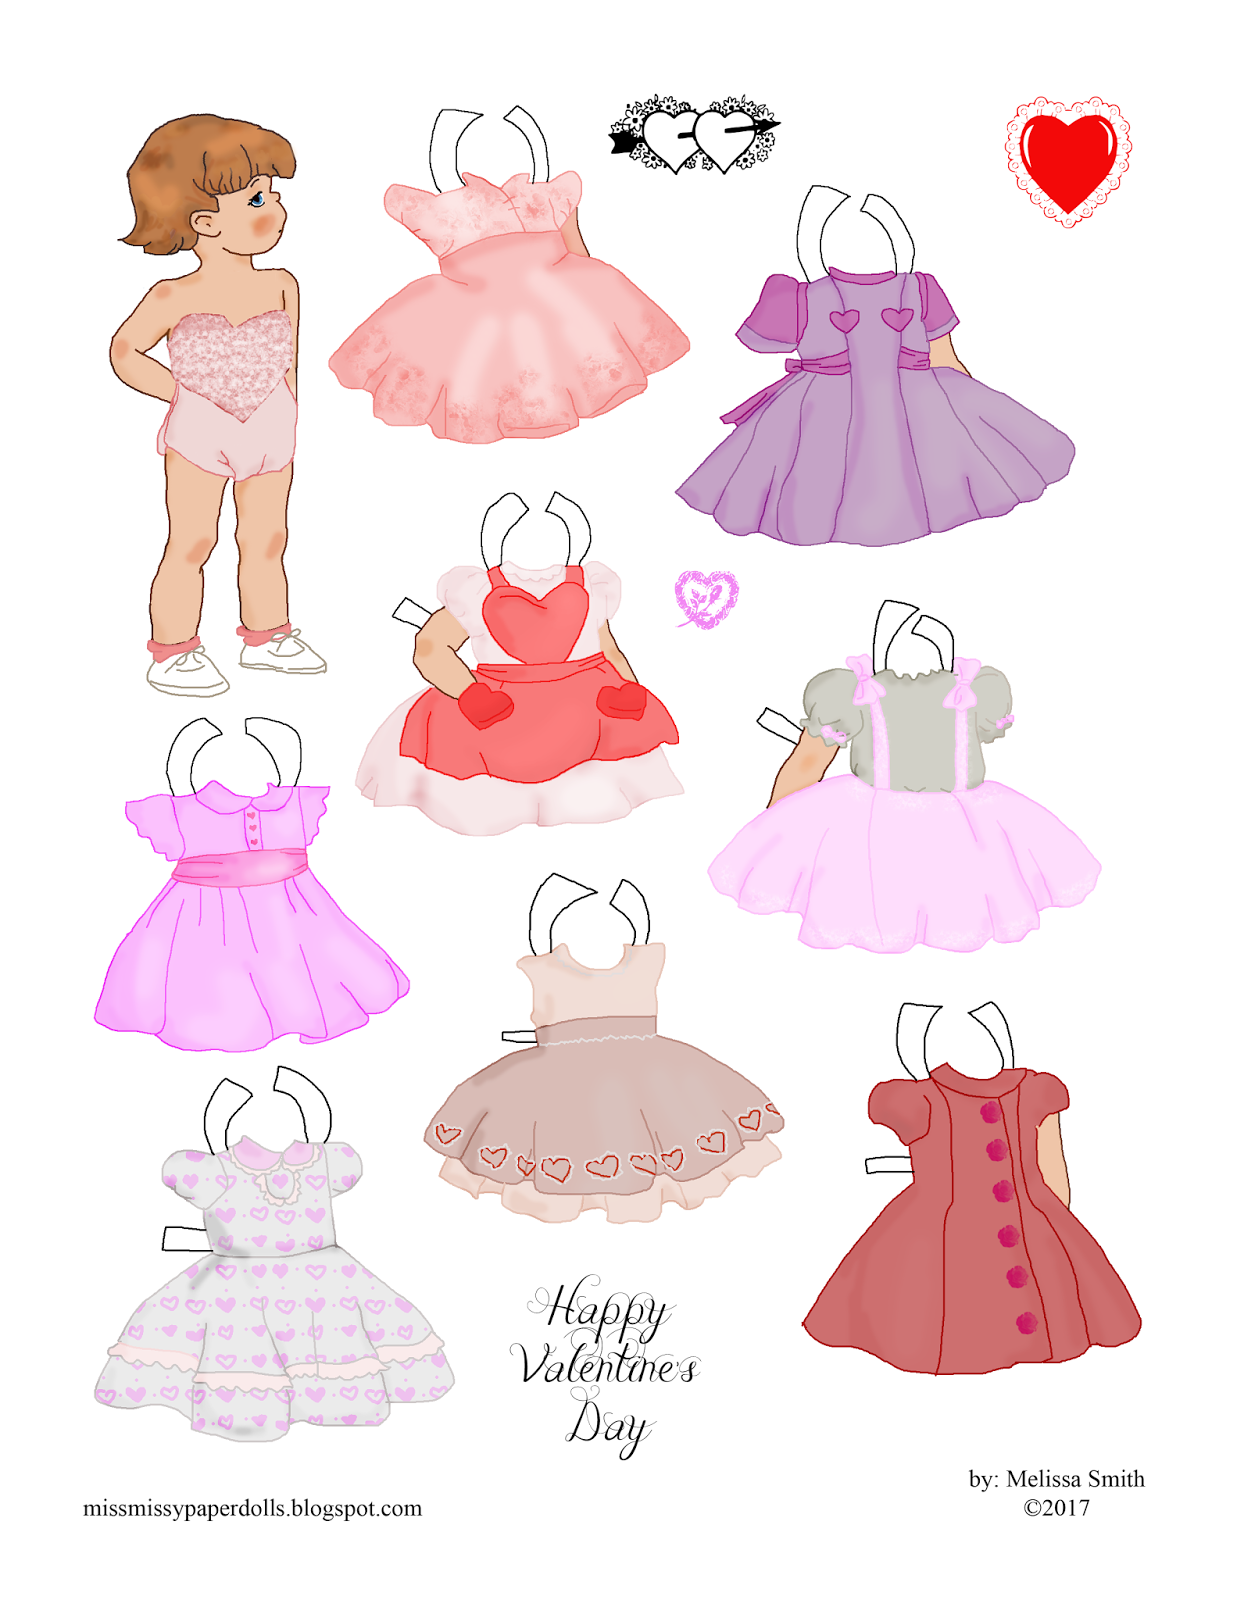 http://missmissypaperdolls.blogspot.com/2015/04/easter-doll.html   I used a base I've already used for an Easter doll in 2015 and edited i...